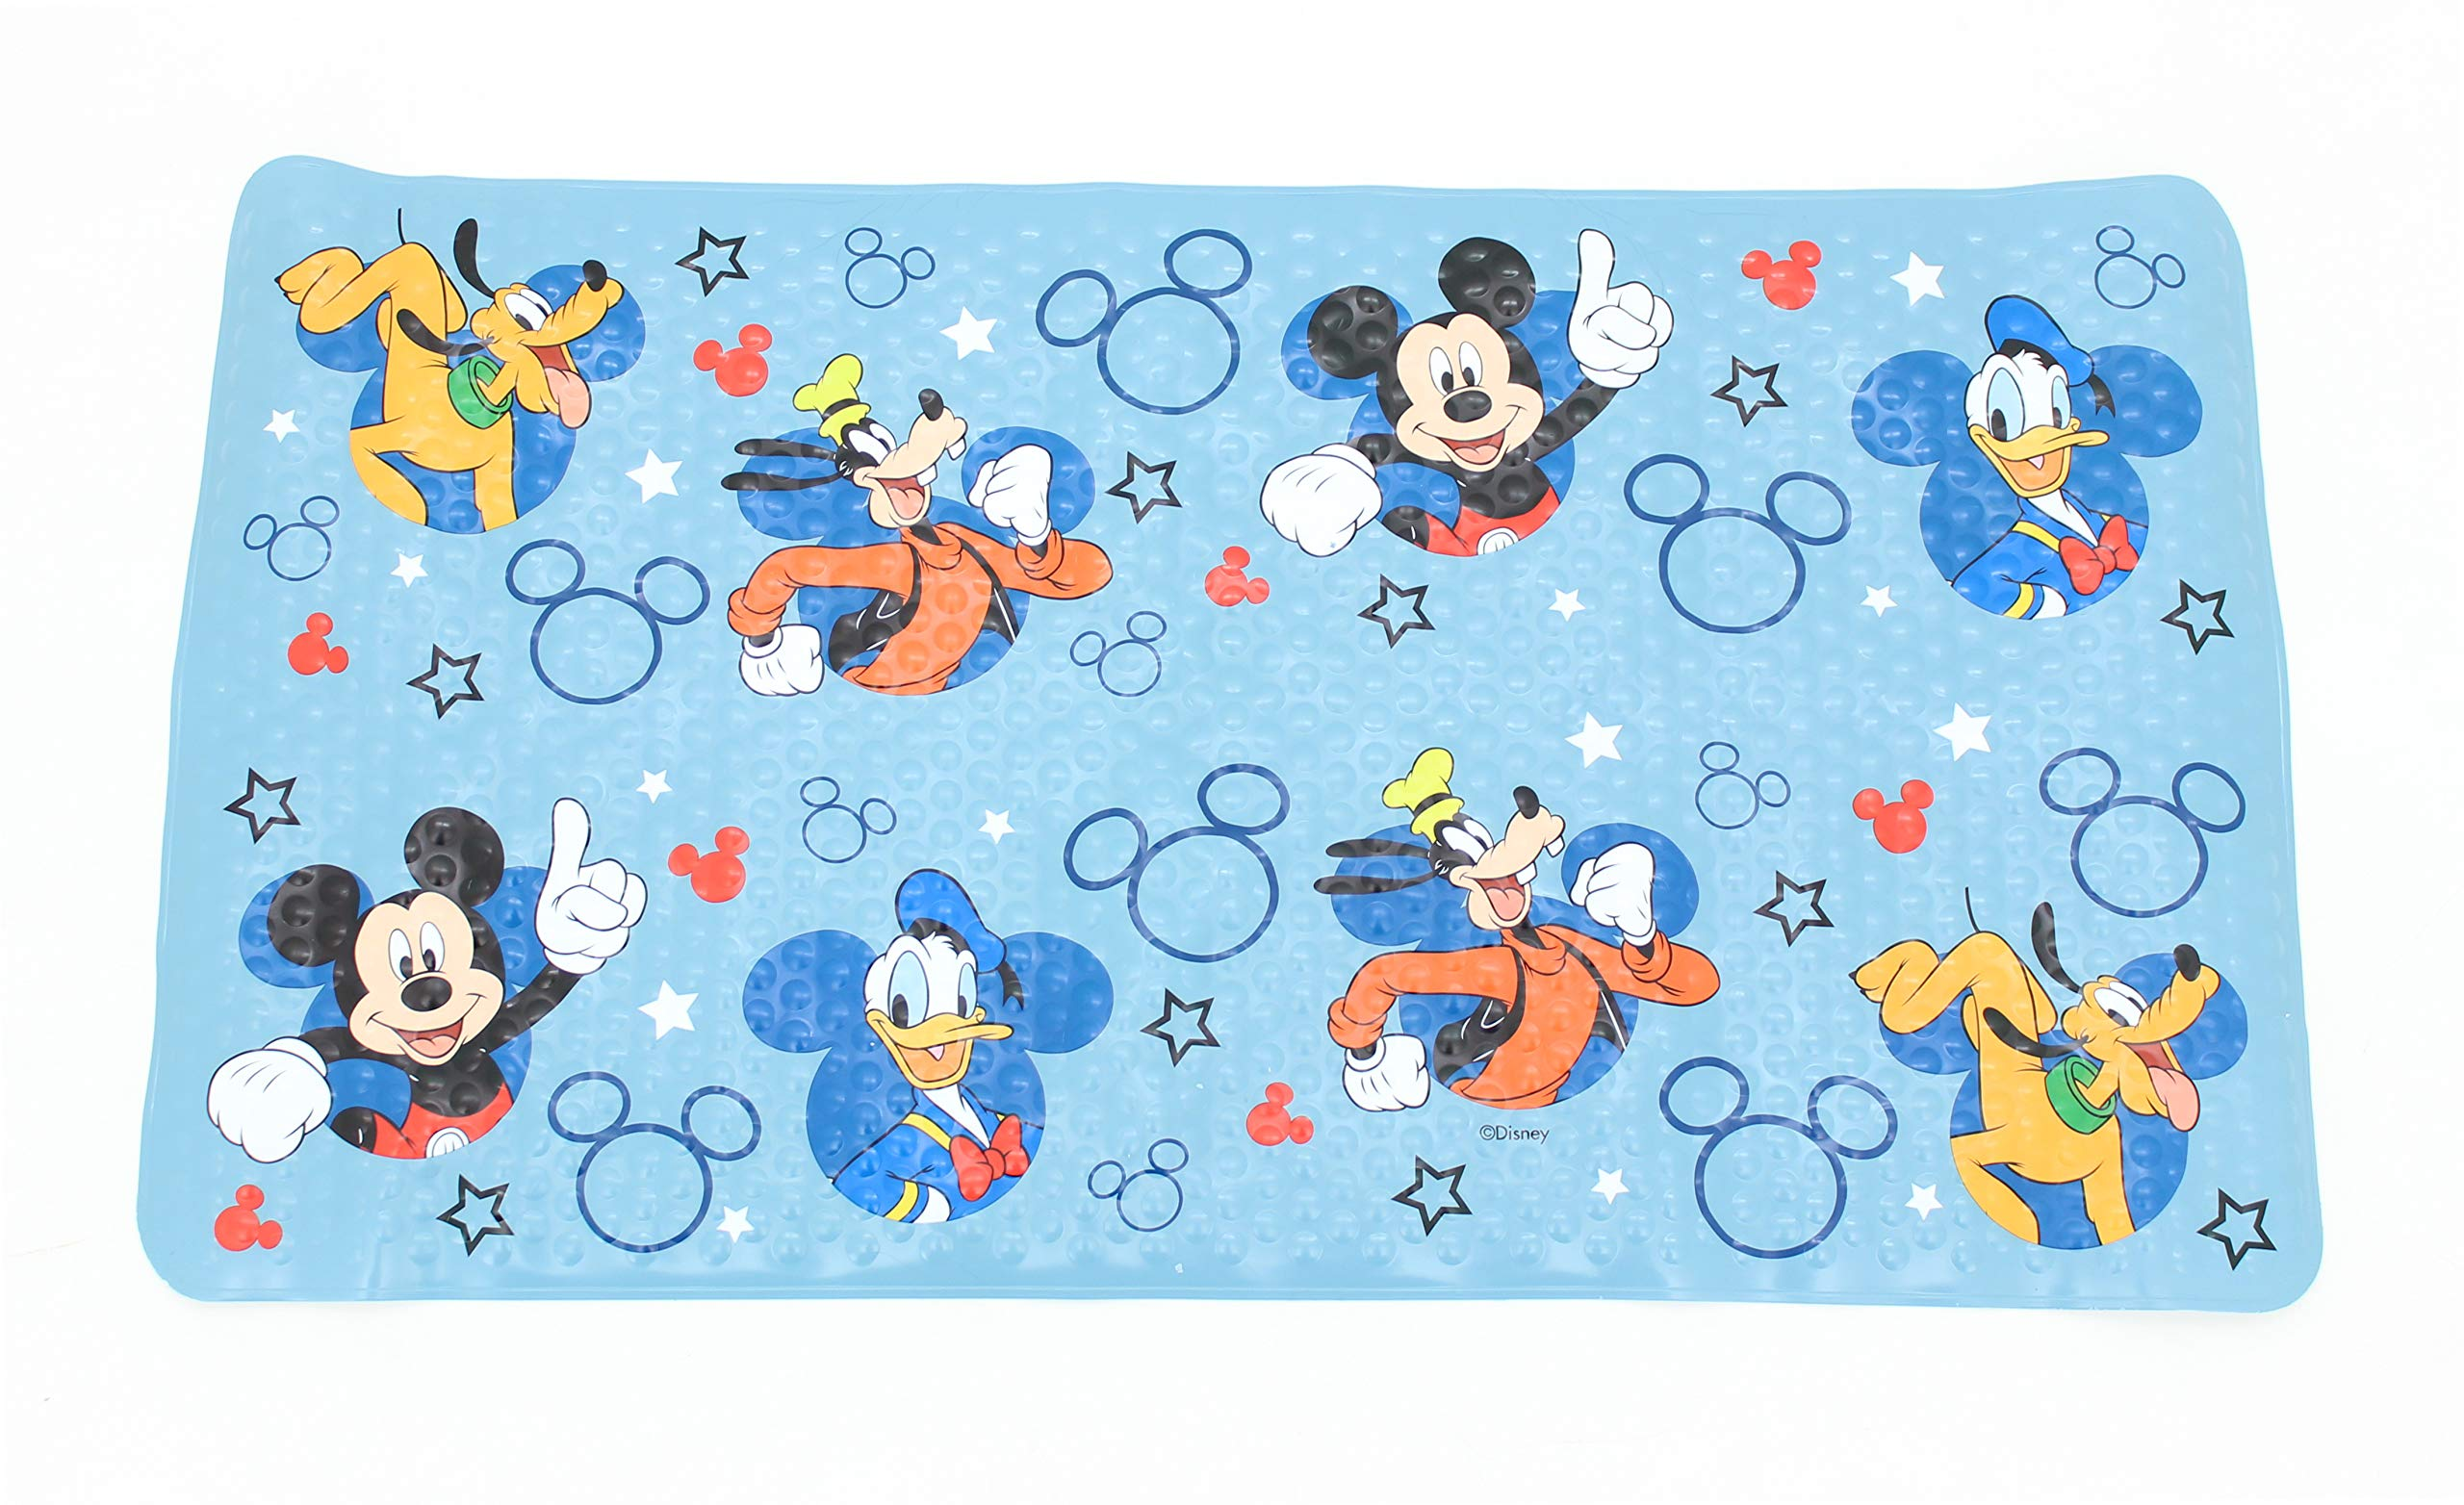 Disney Mickey Mouse Blue Bath Tub Mat - Kids Bath Mat